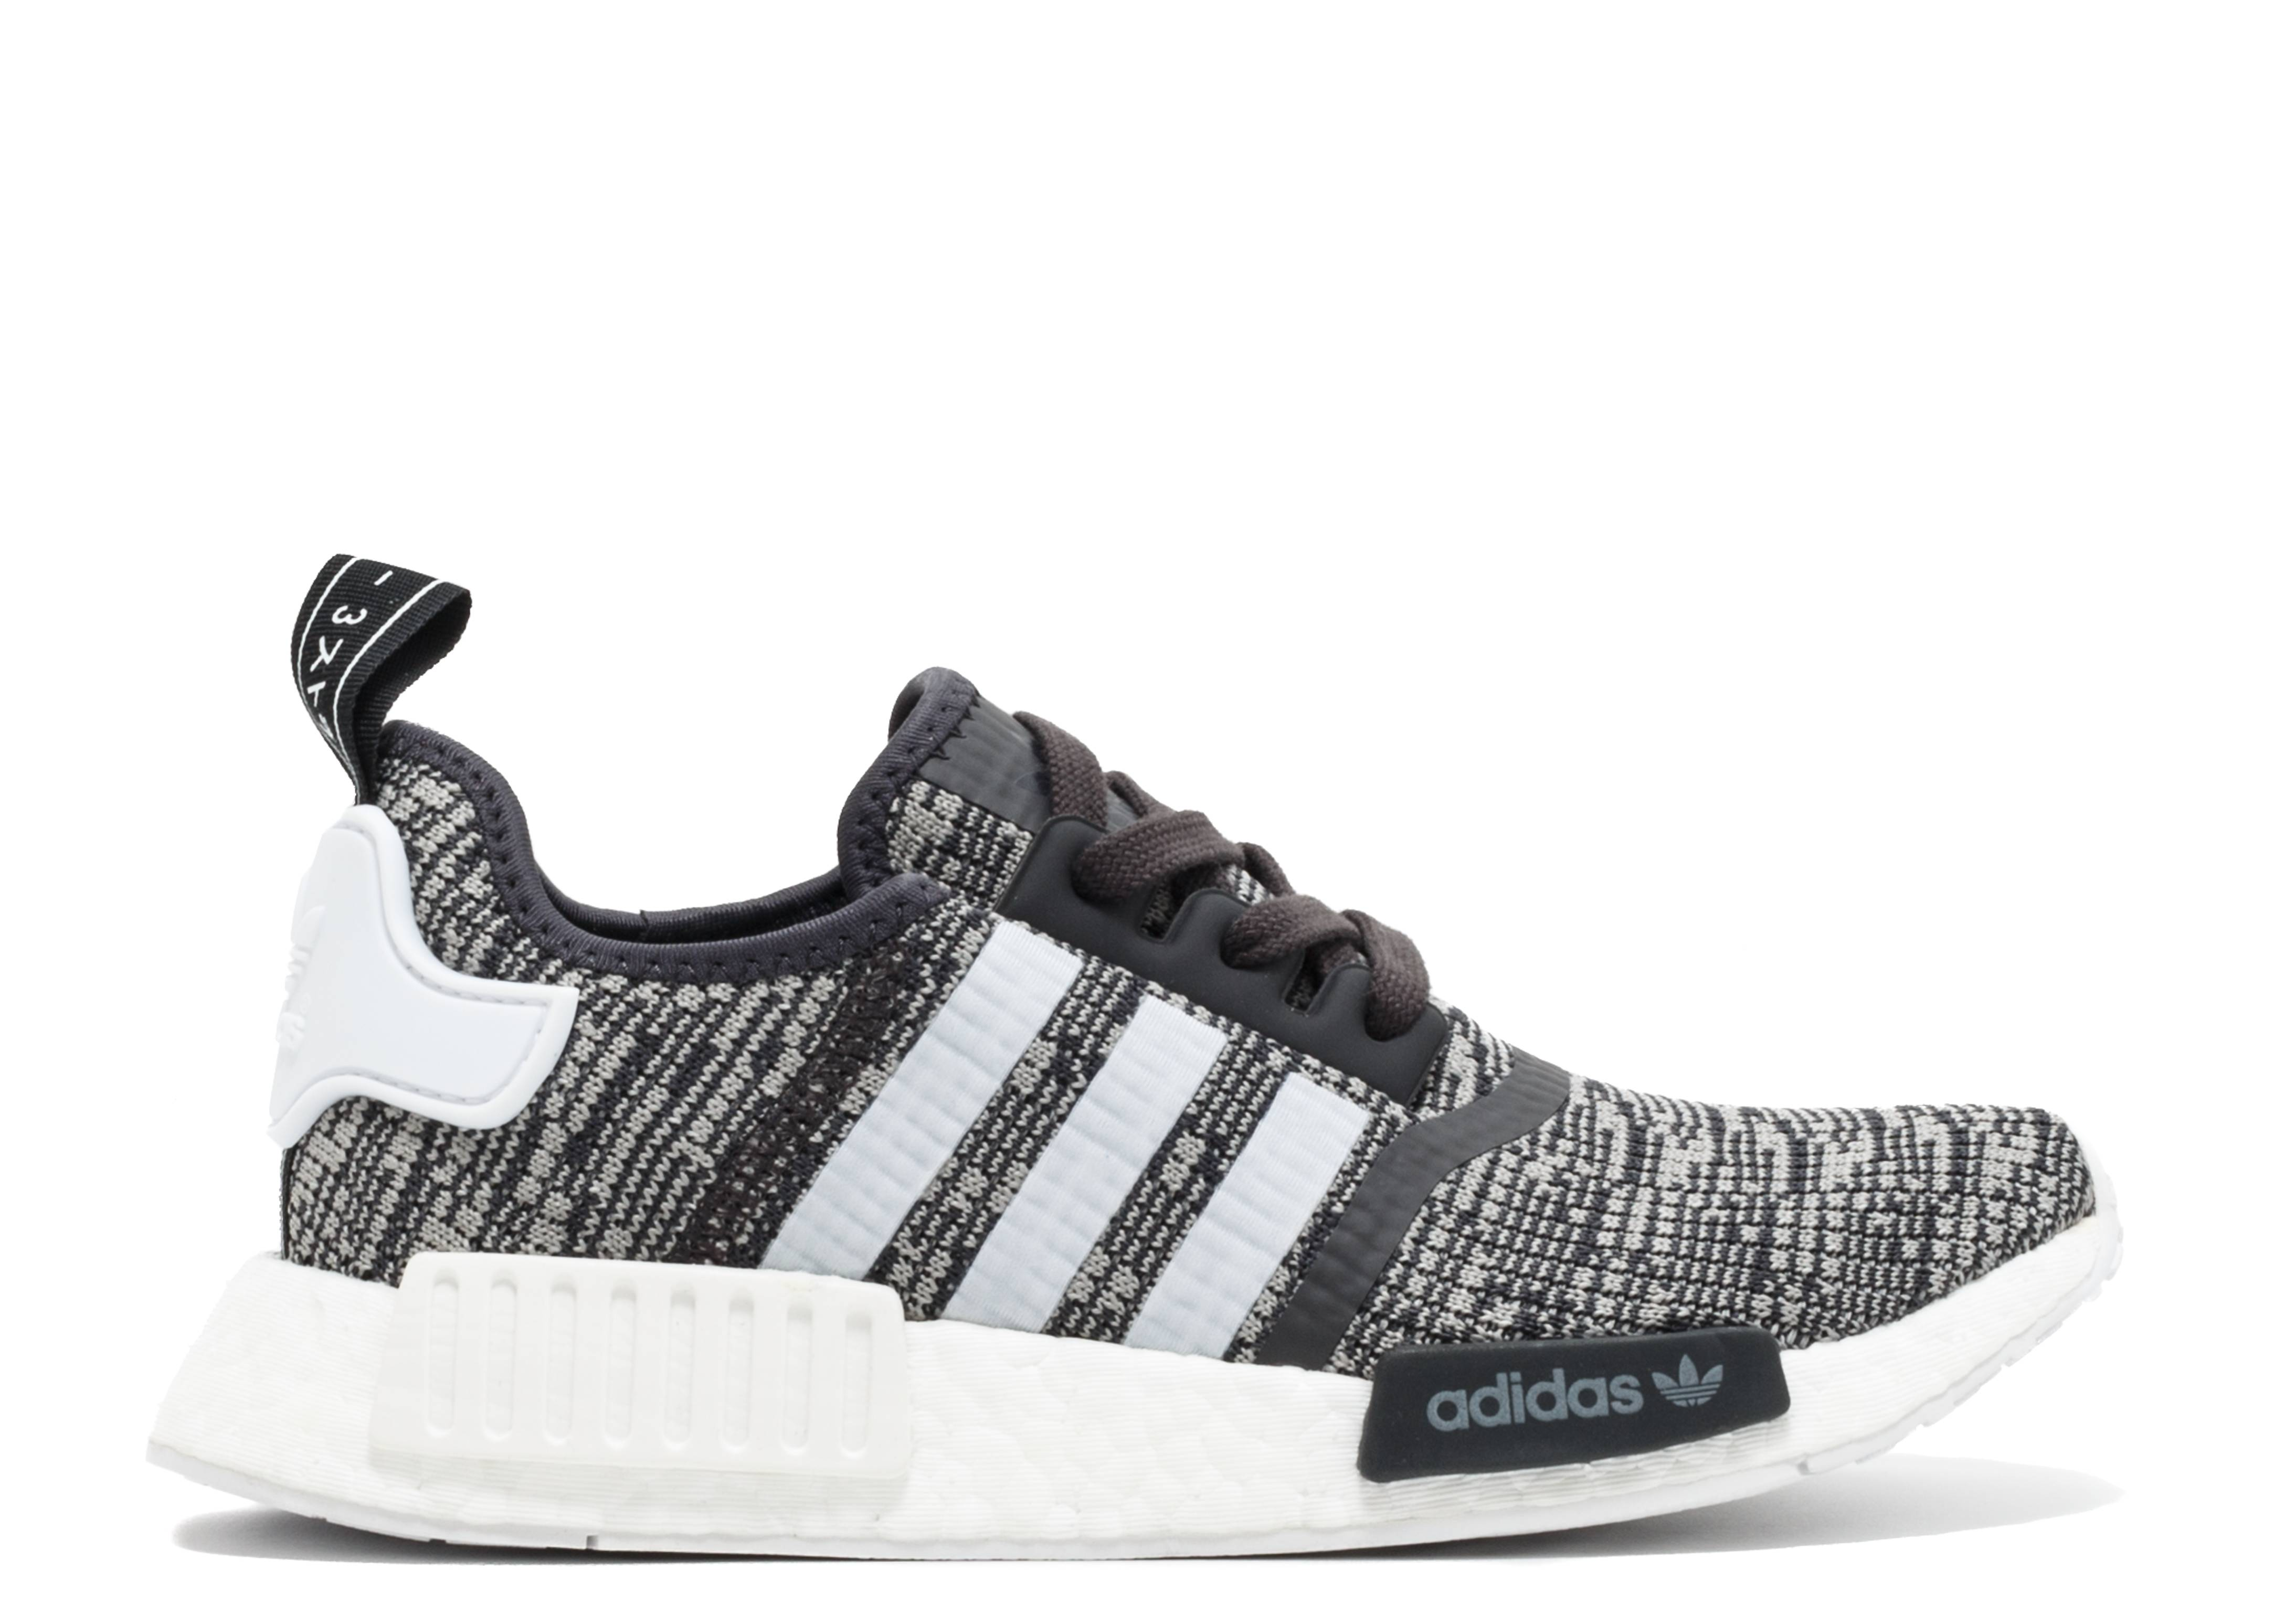 Nmd R1 Adidas s31511 light grey/white blue